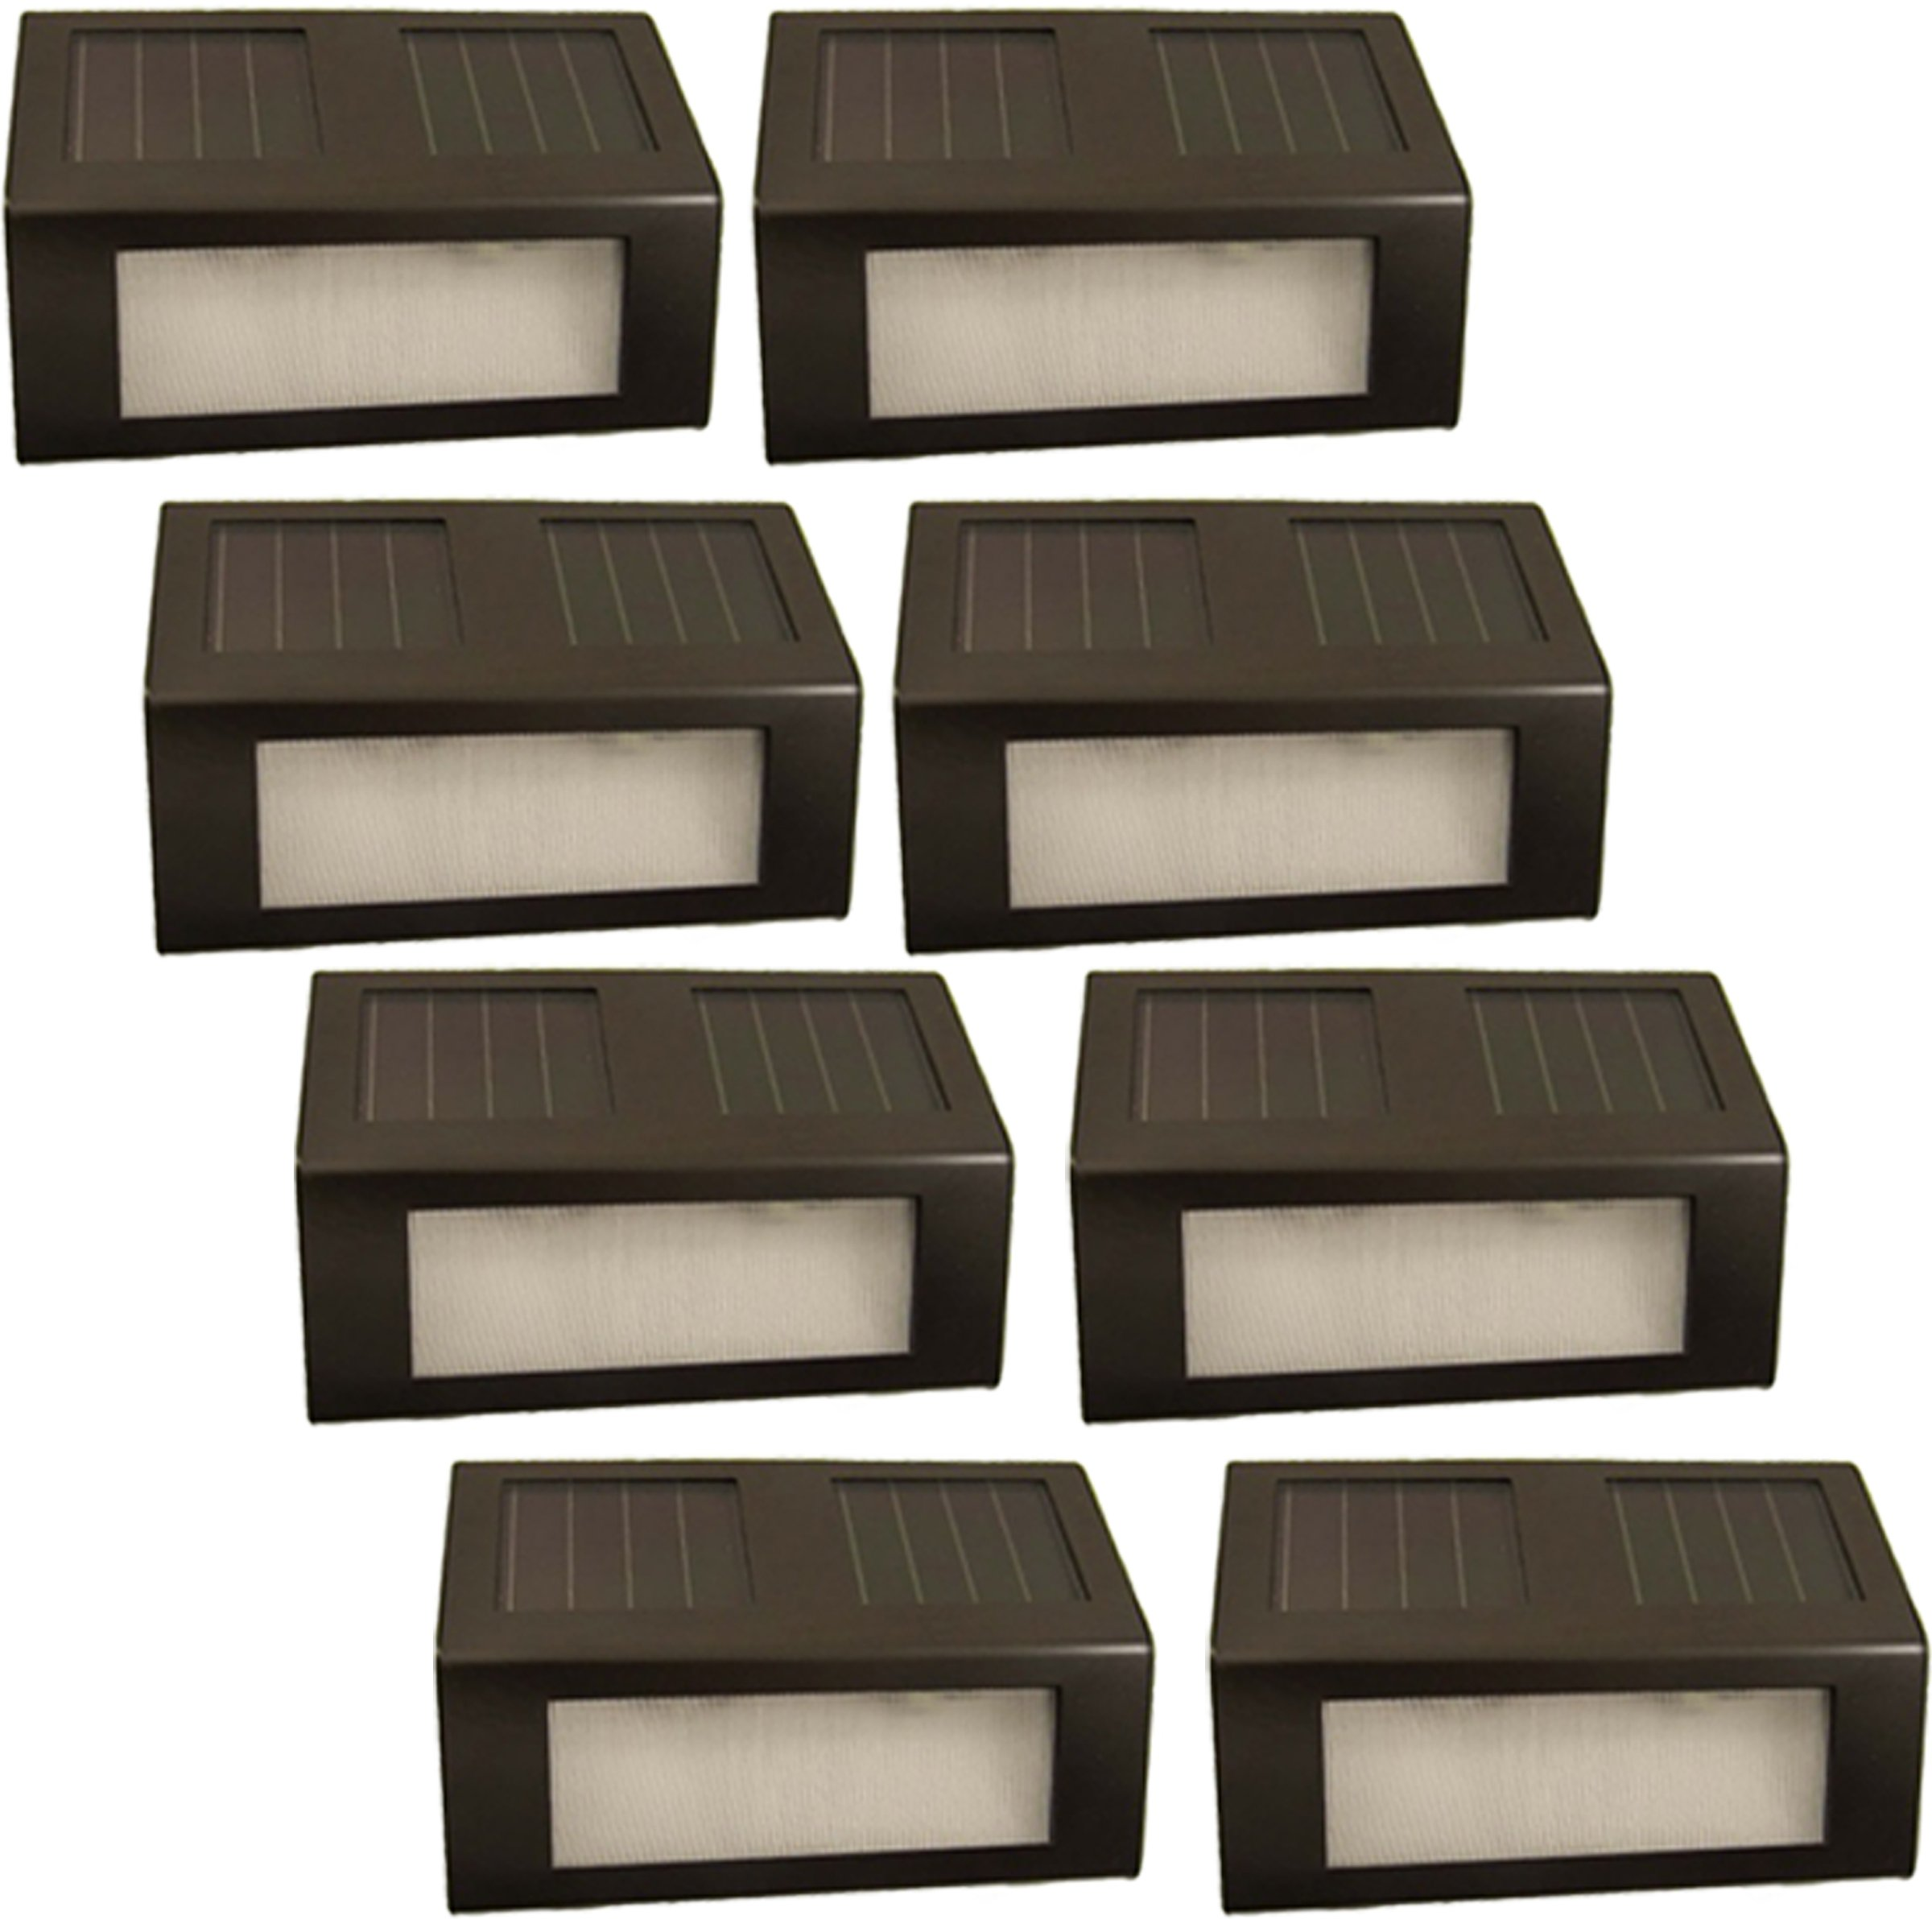 (8 Pack) Reusable Revolution Solar Outdoor LED Stair Lights (Brown) by Reusable Revolution